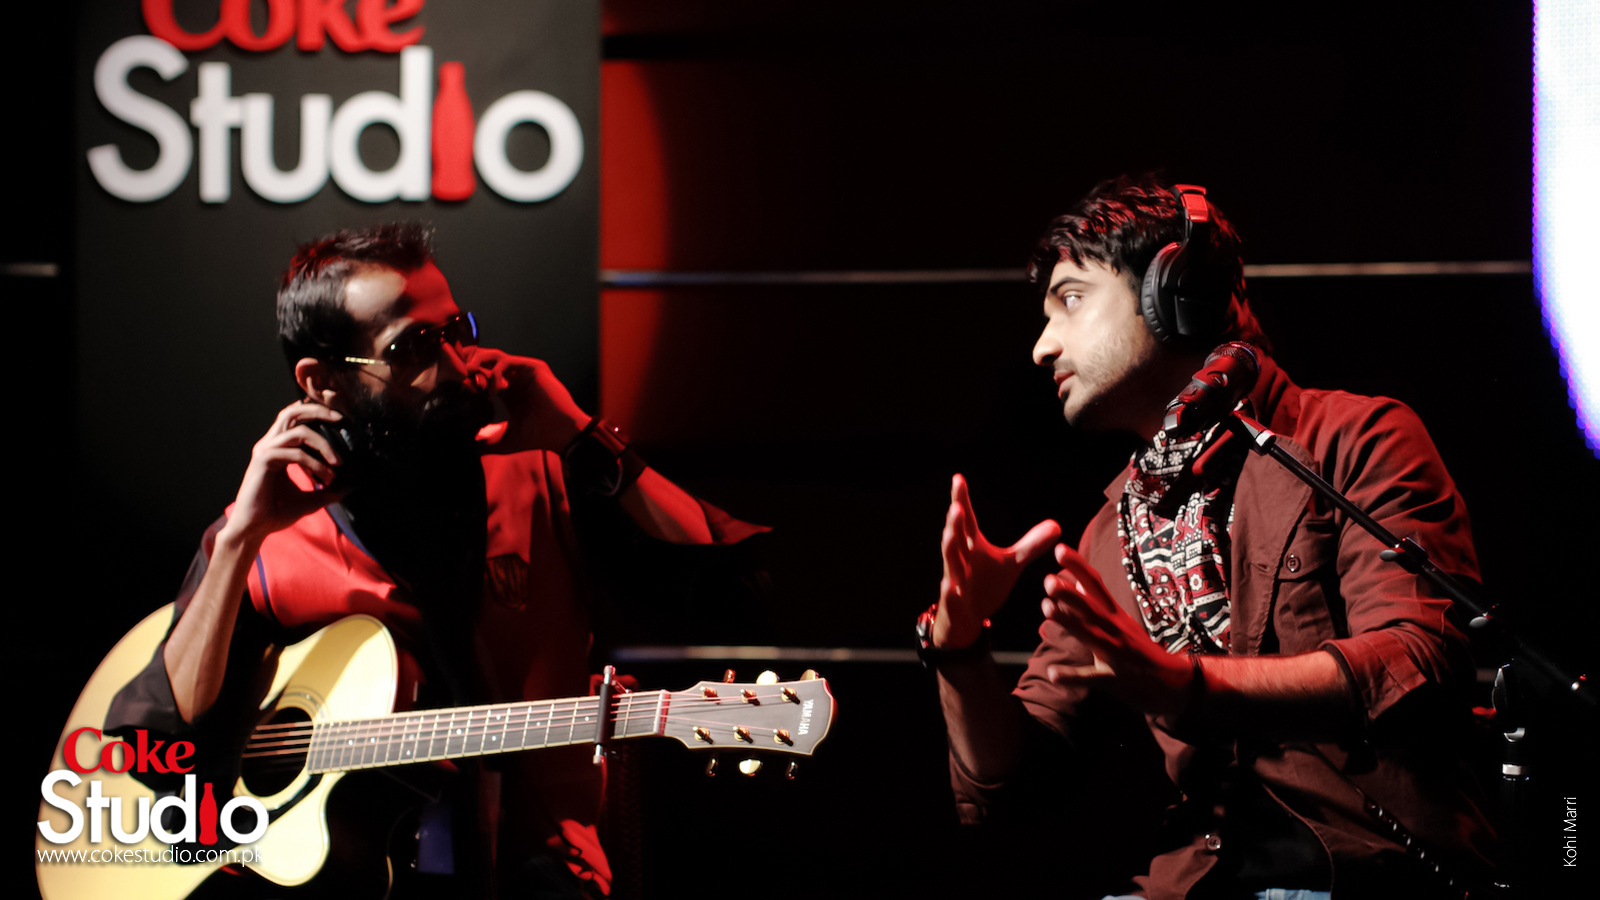 The Sketches Mandh Waai in Coke Studio (Video/Mp3/Lyrics) - Pakium.